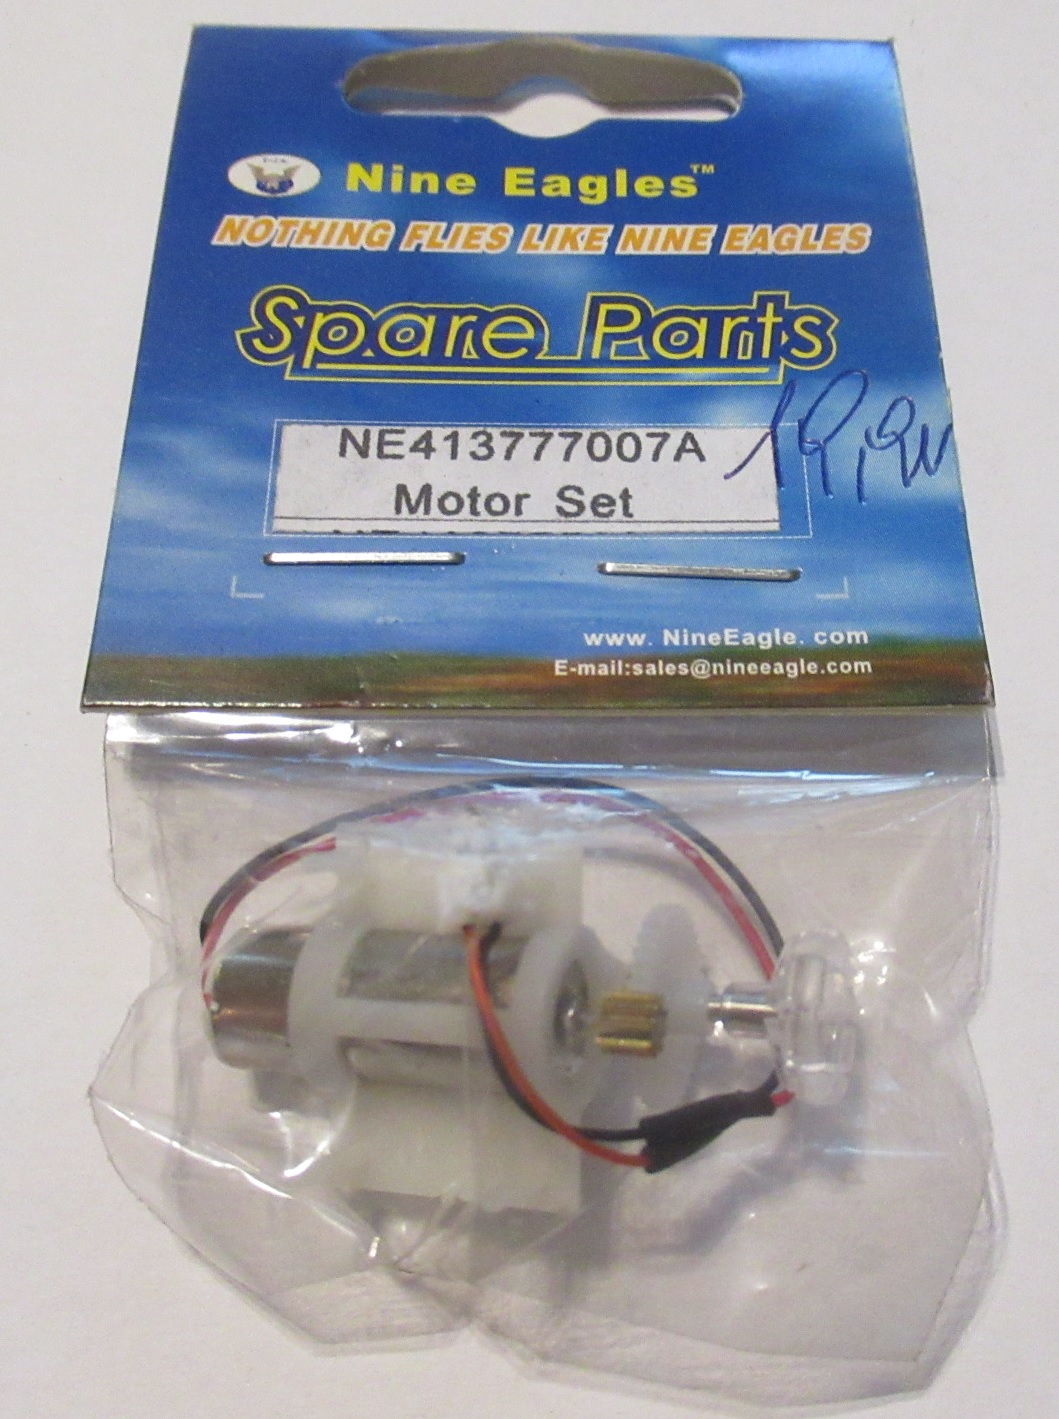 Nine Eagles NE413777007A Motor